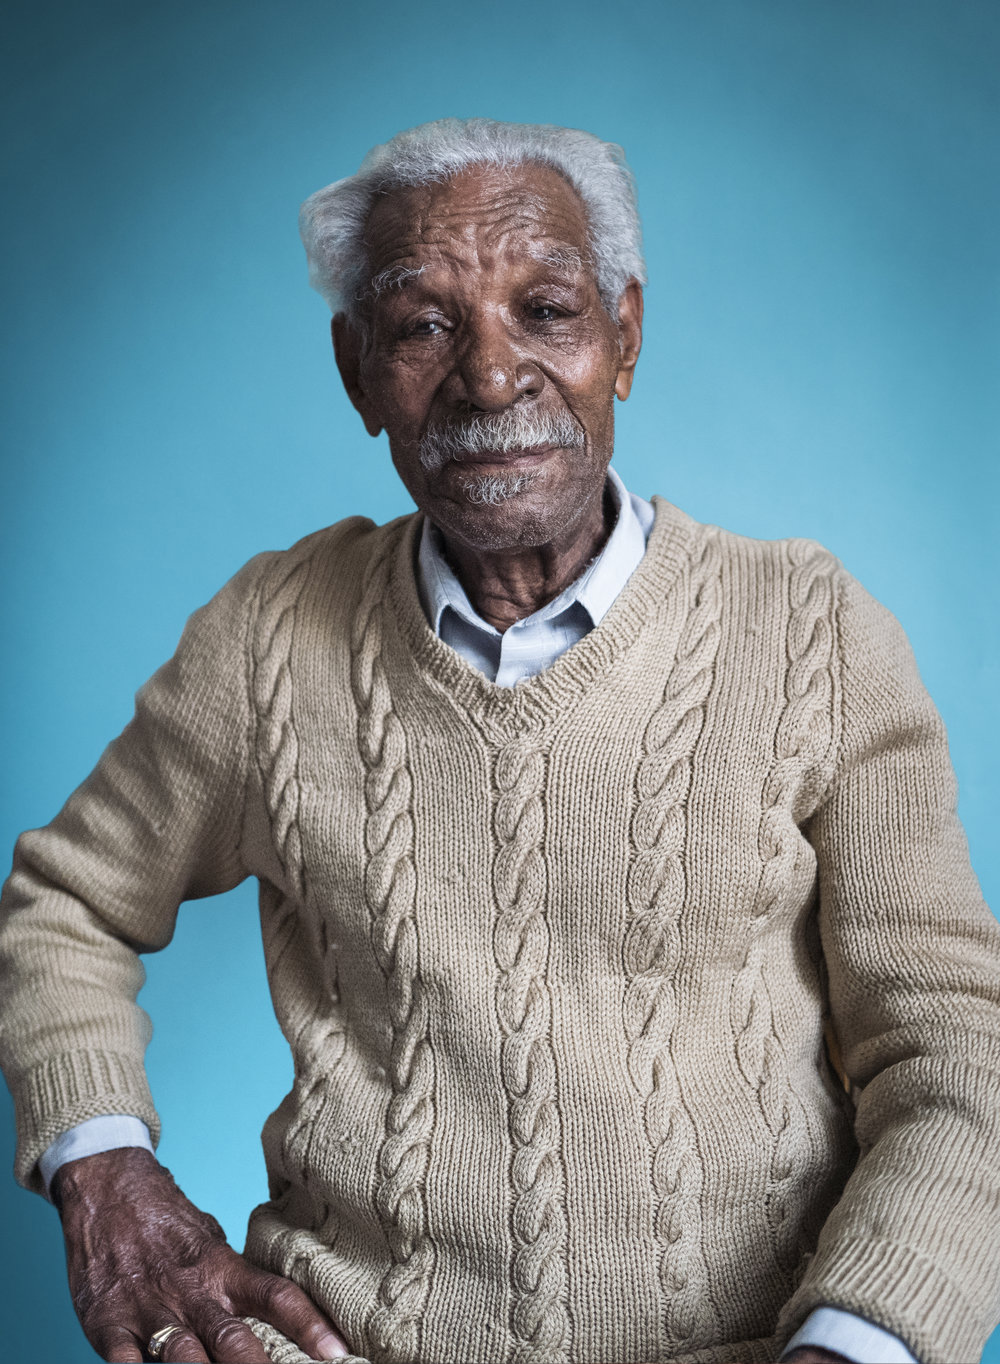 Richard's story - 'At 96 my life is in thirds...a third in Jamaica...two-thirds here.  Do I feel Jamaican?  Well I was born in Jamaica...but the Jamaican part has long gone.'